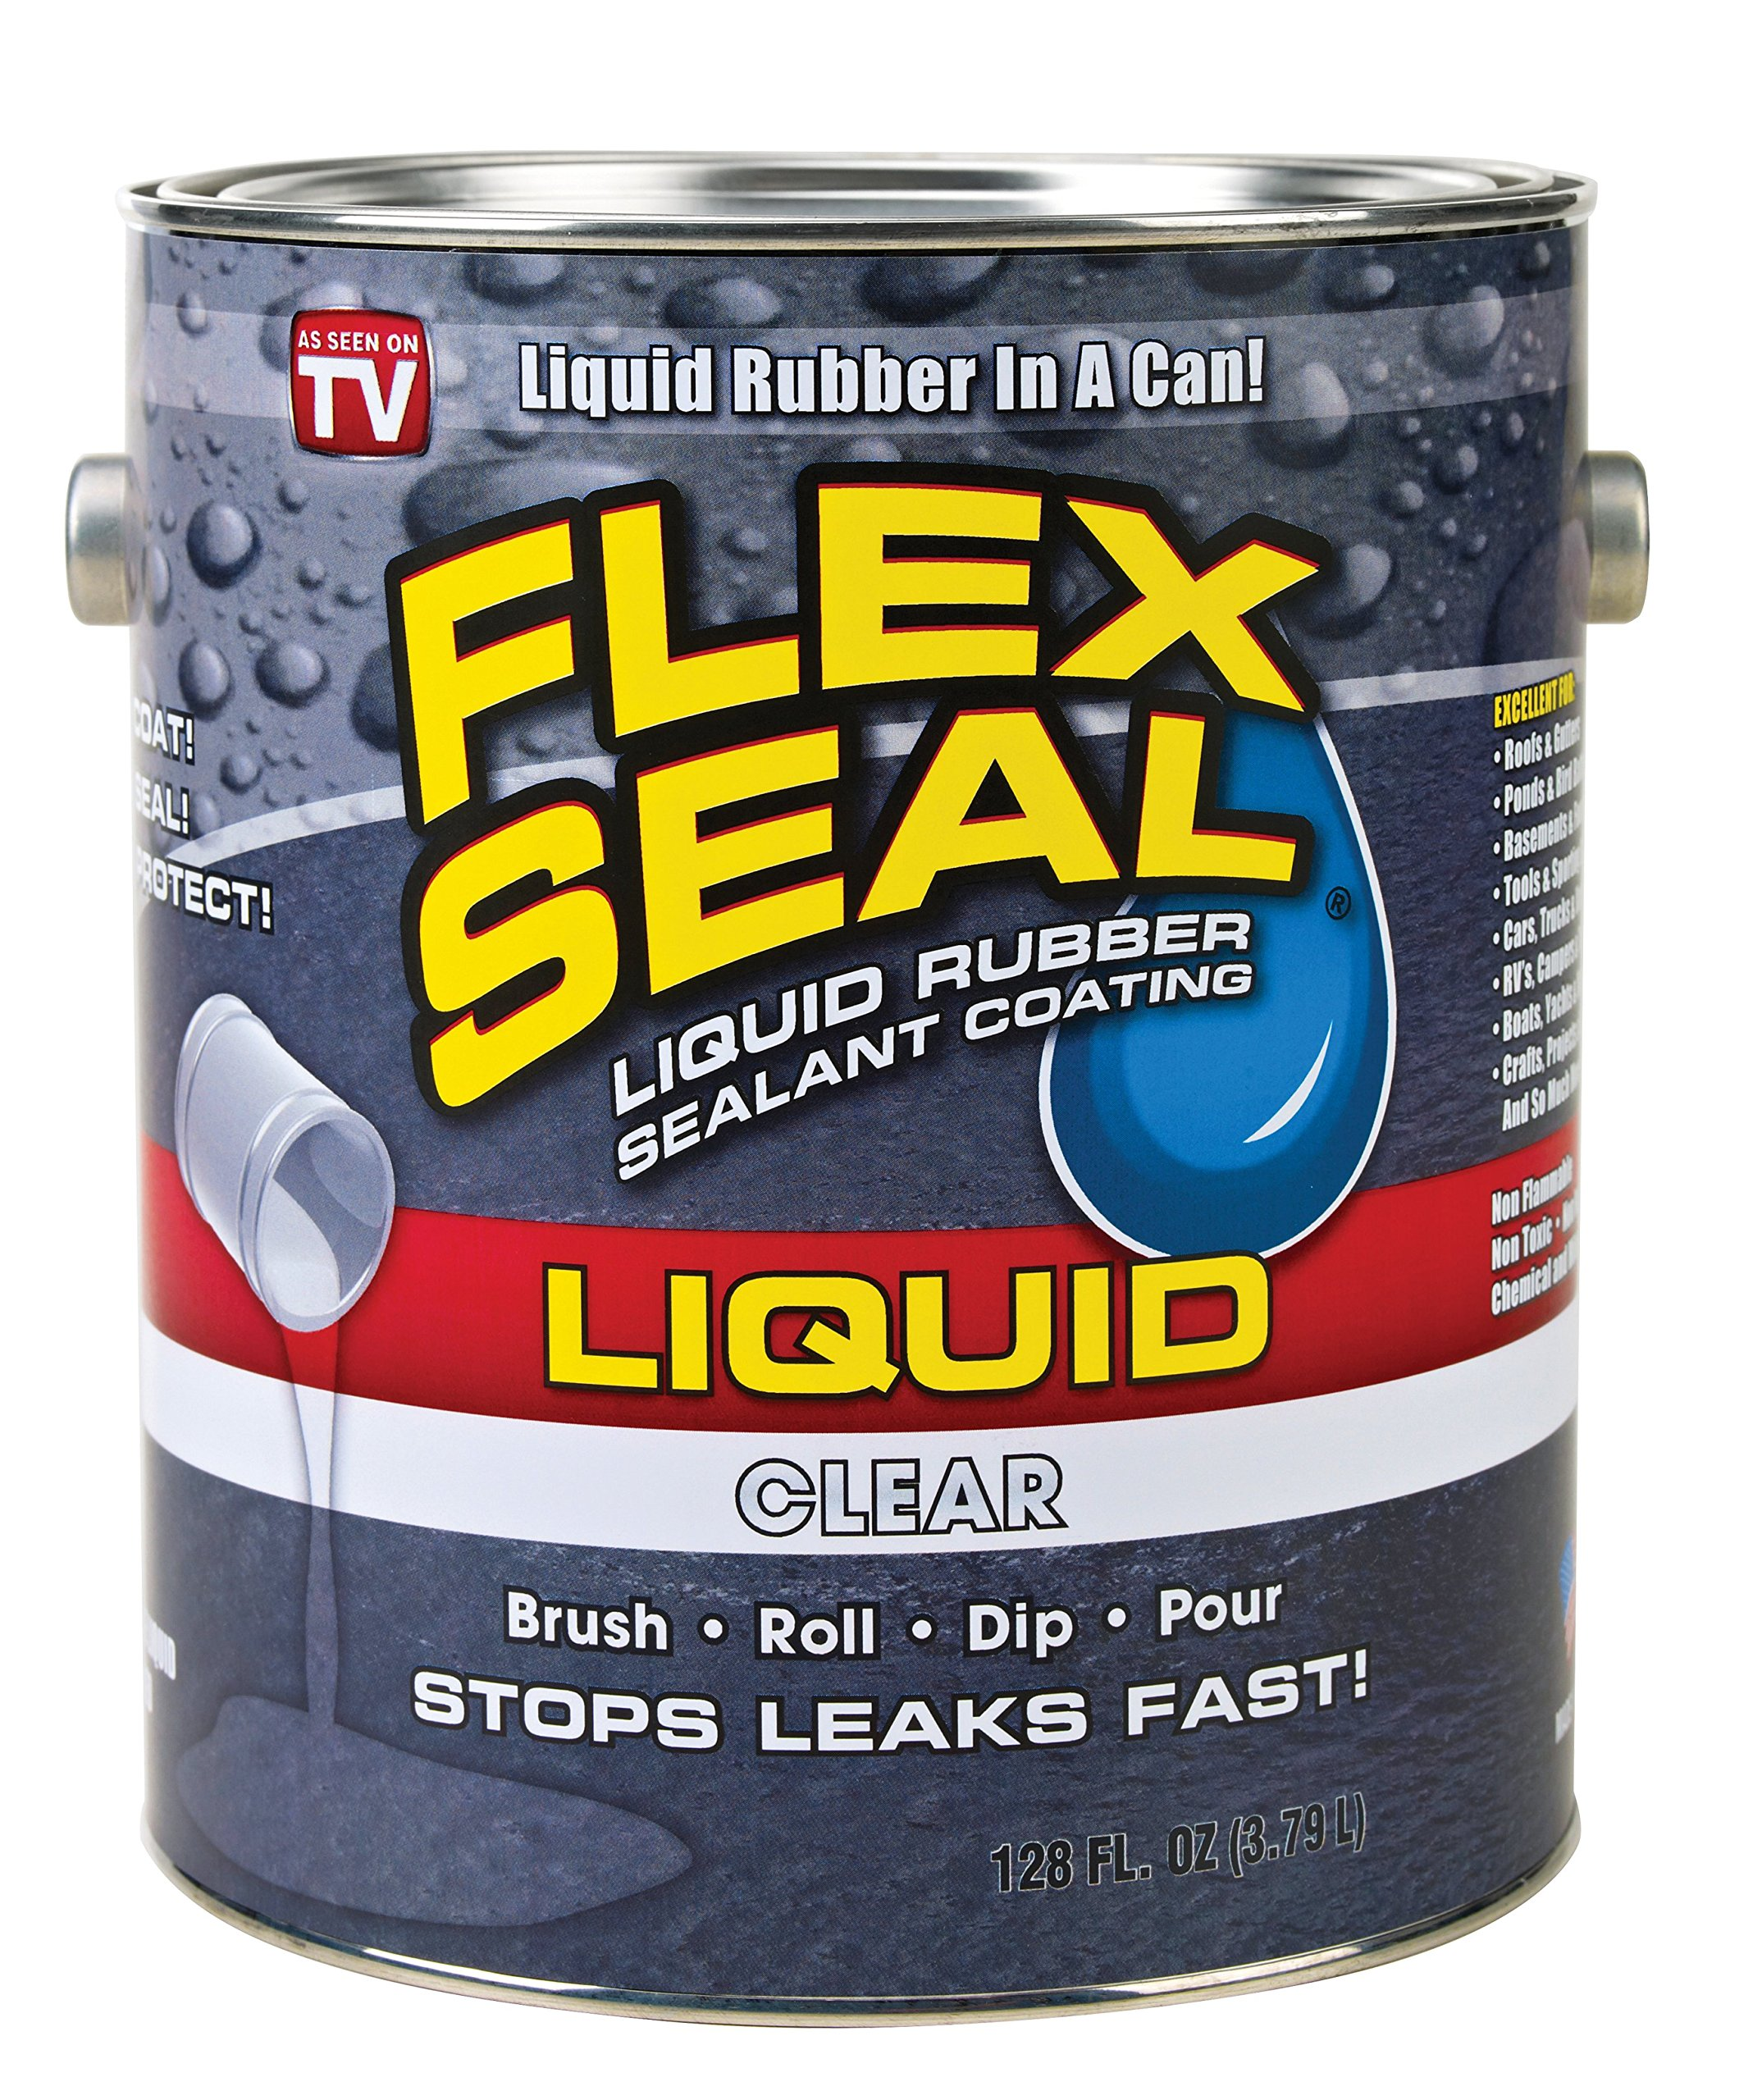 Flex Seal Liquid Rubber in a Can, 1-gal, Clear product image